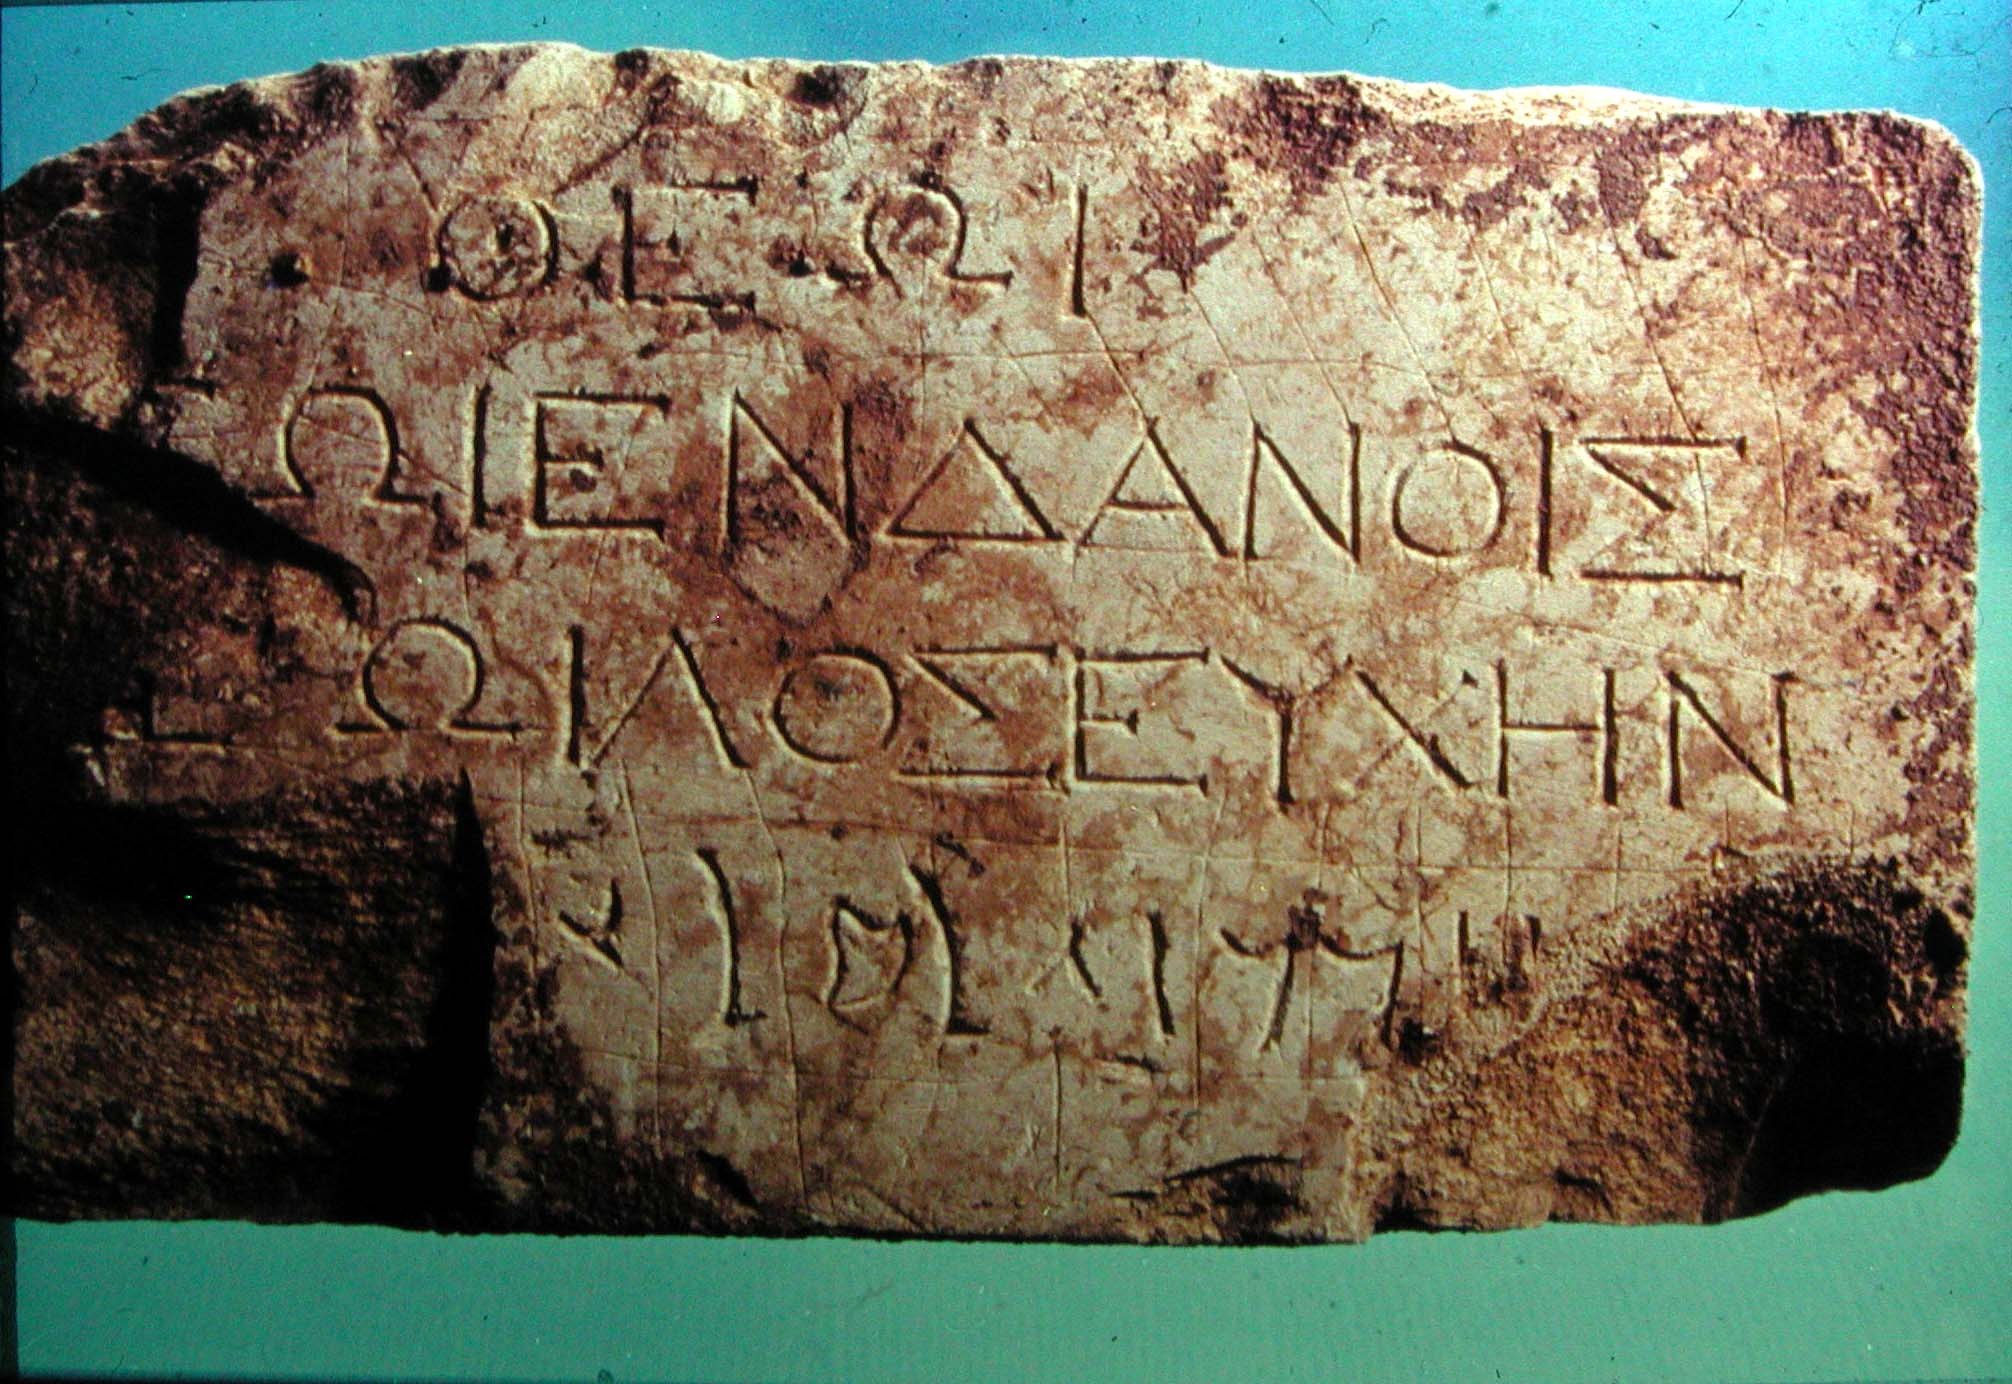 Hellenistic Inscription